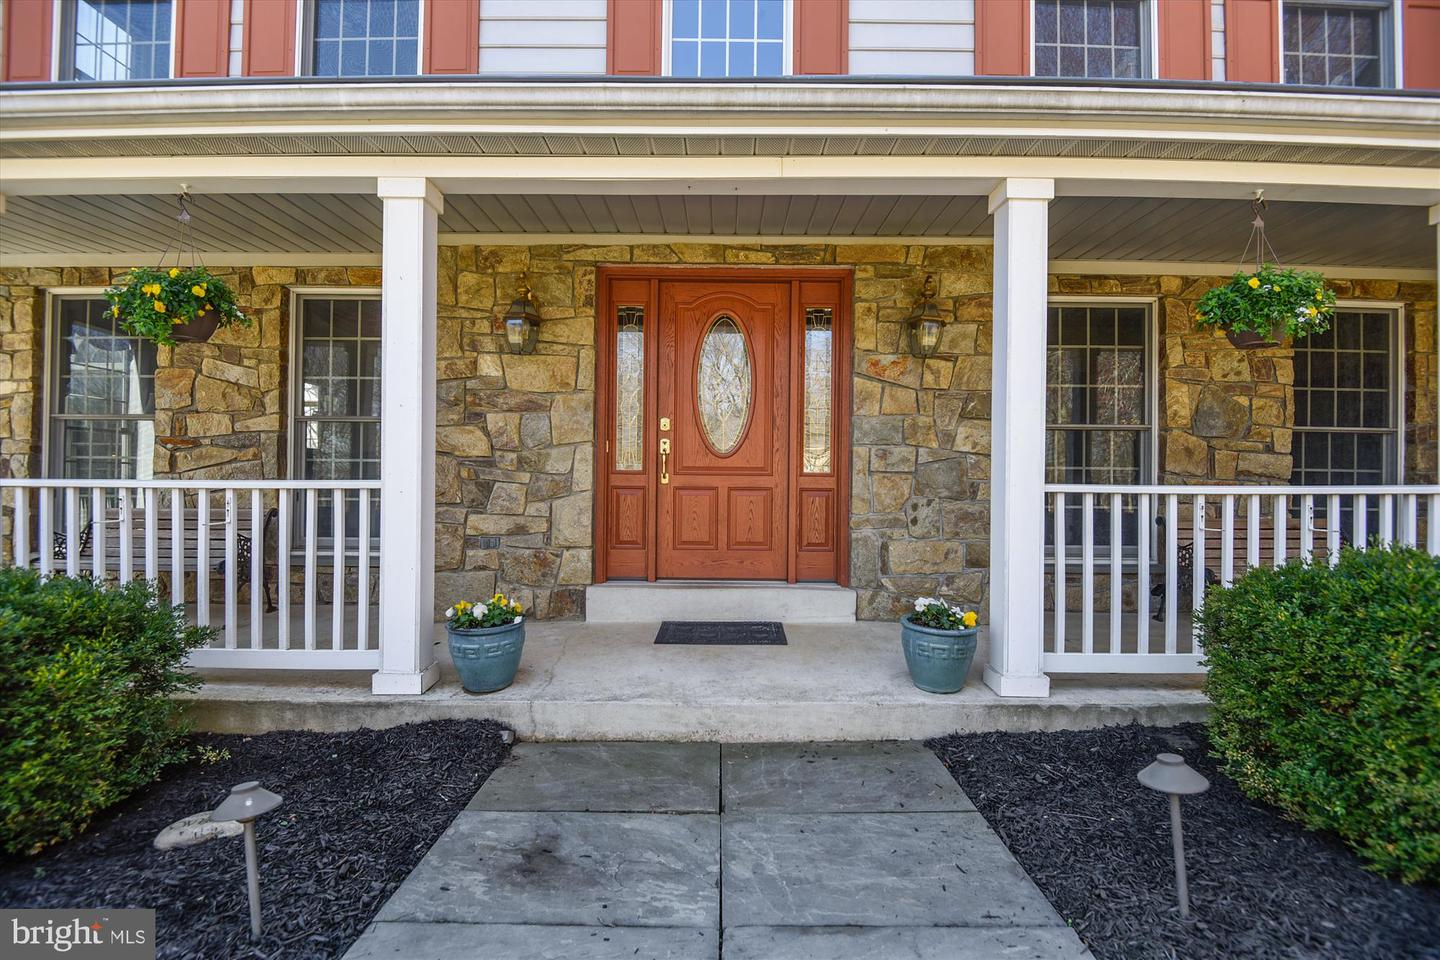 7328 CLIFF PINE DR, GAITHERSBURG, Maryland 20879, 4 Bedrooms Bedrooms, ,5 BathroomsBathrooms,Single Family,For Sale,7328 CLIFF PINE DR,MDMC749450